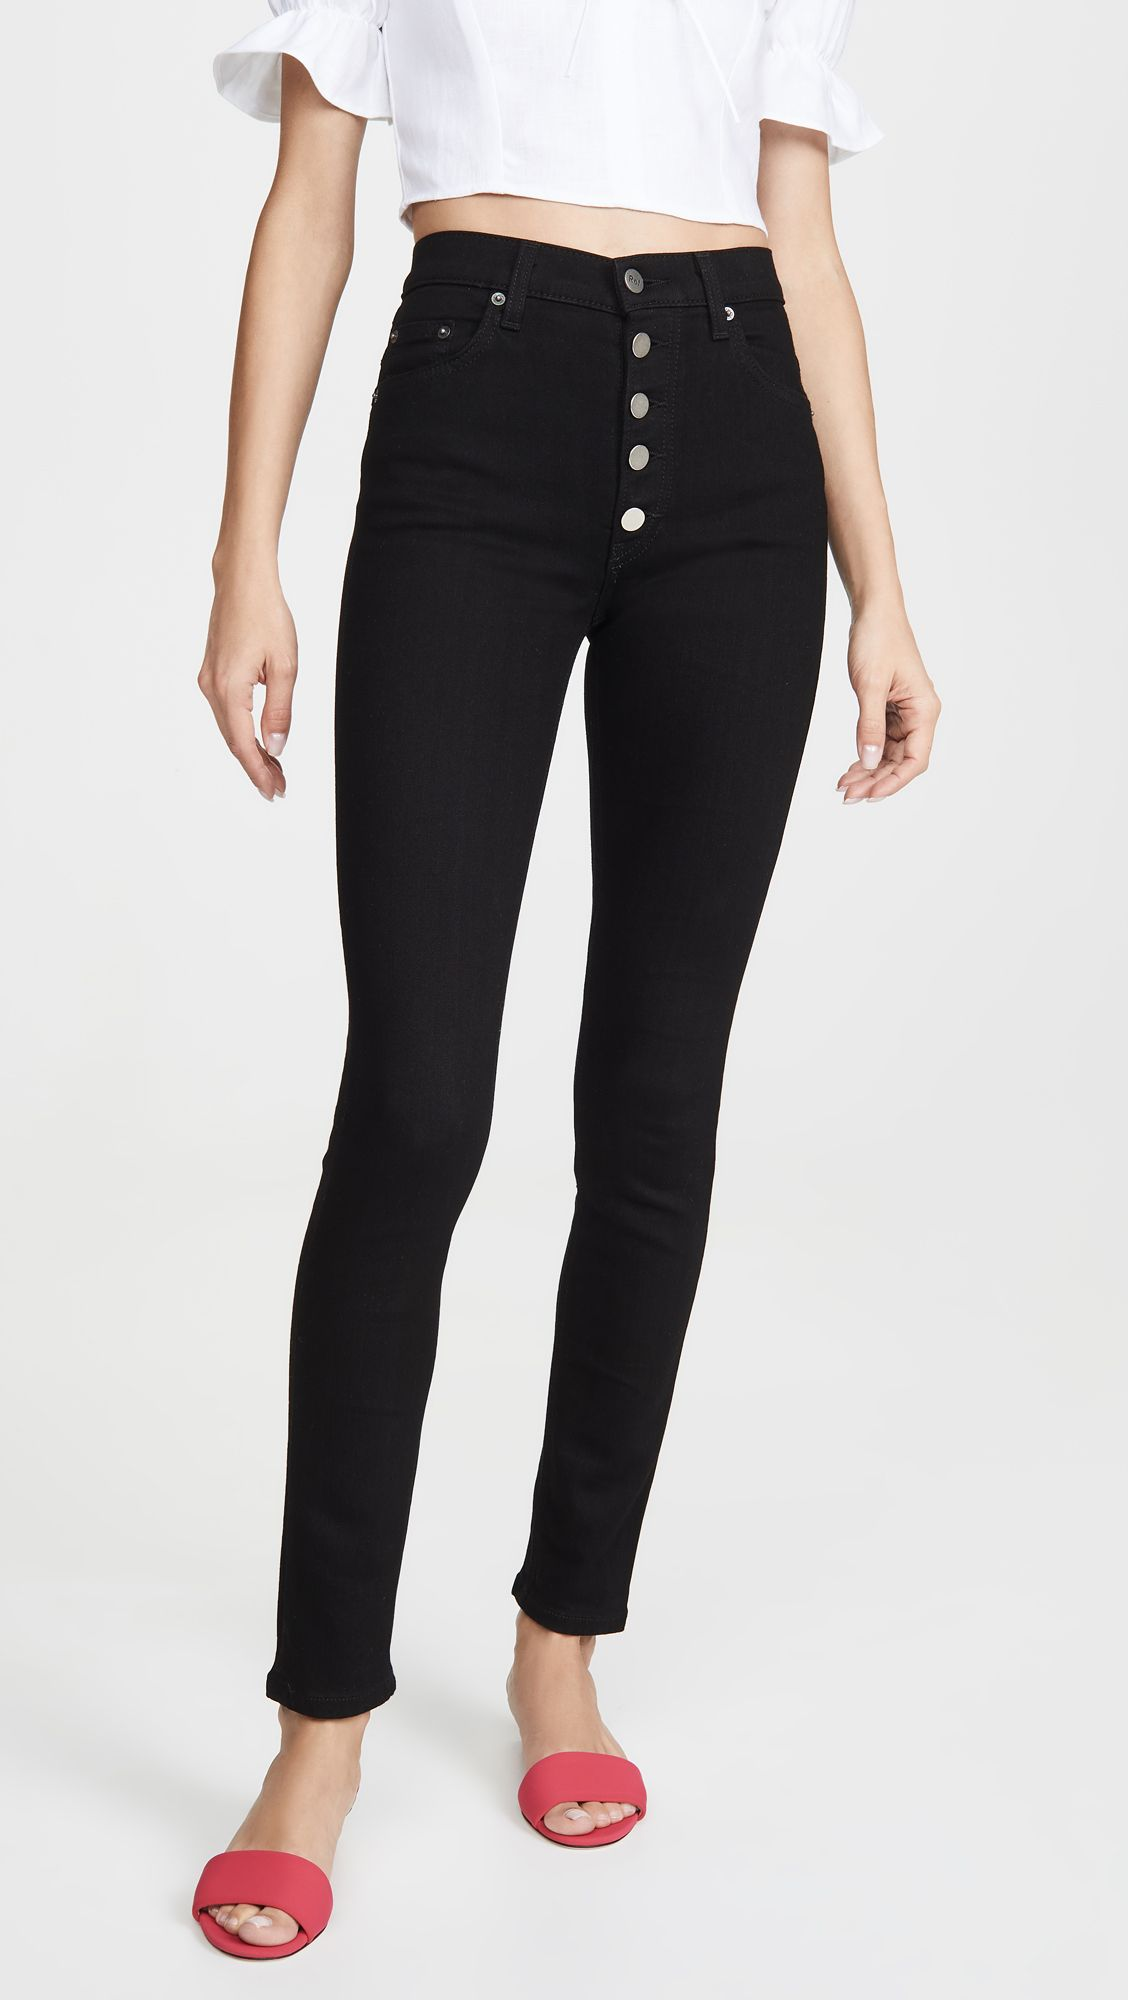 5 Issues Everyone Has With Skinny Jeans (and How to Fix Them) 10